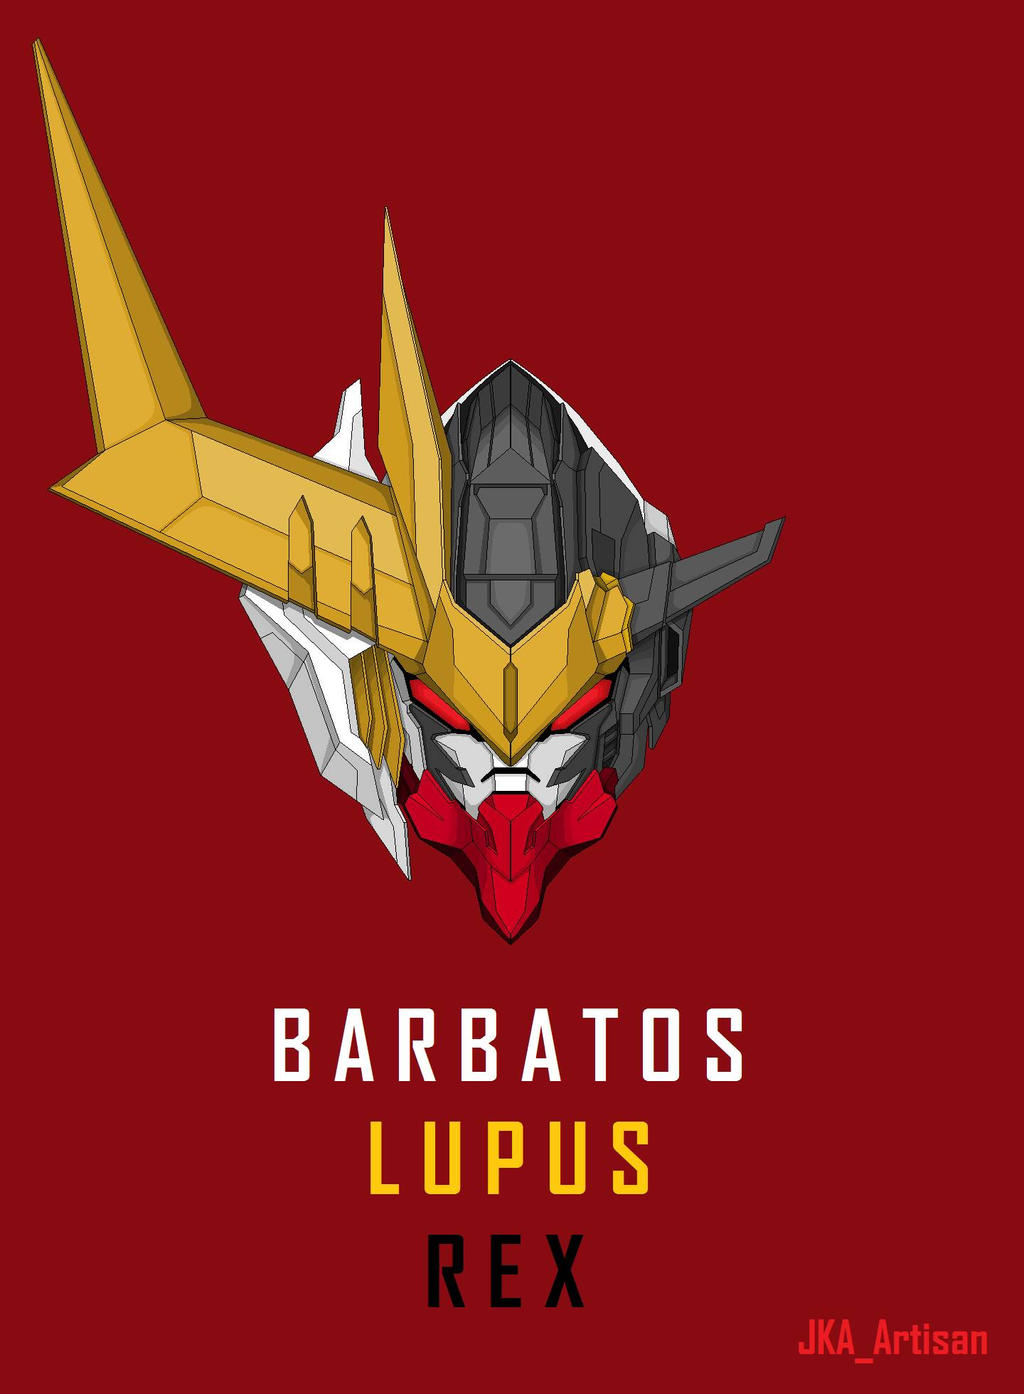 Gundam Barbatos Lupus Rex Last Stand By Mikazuki008 On Deviantart